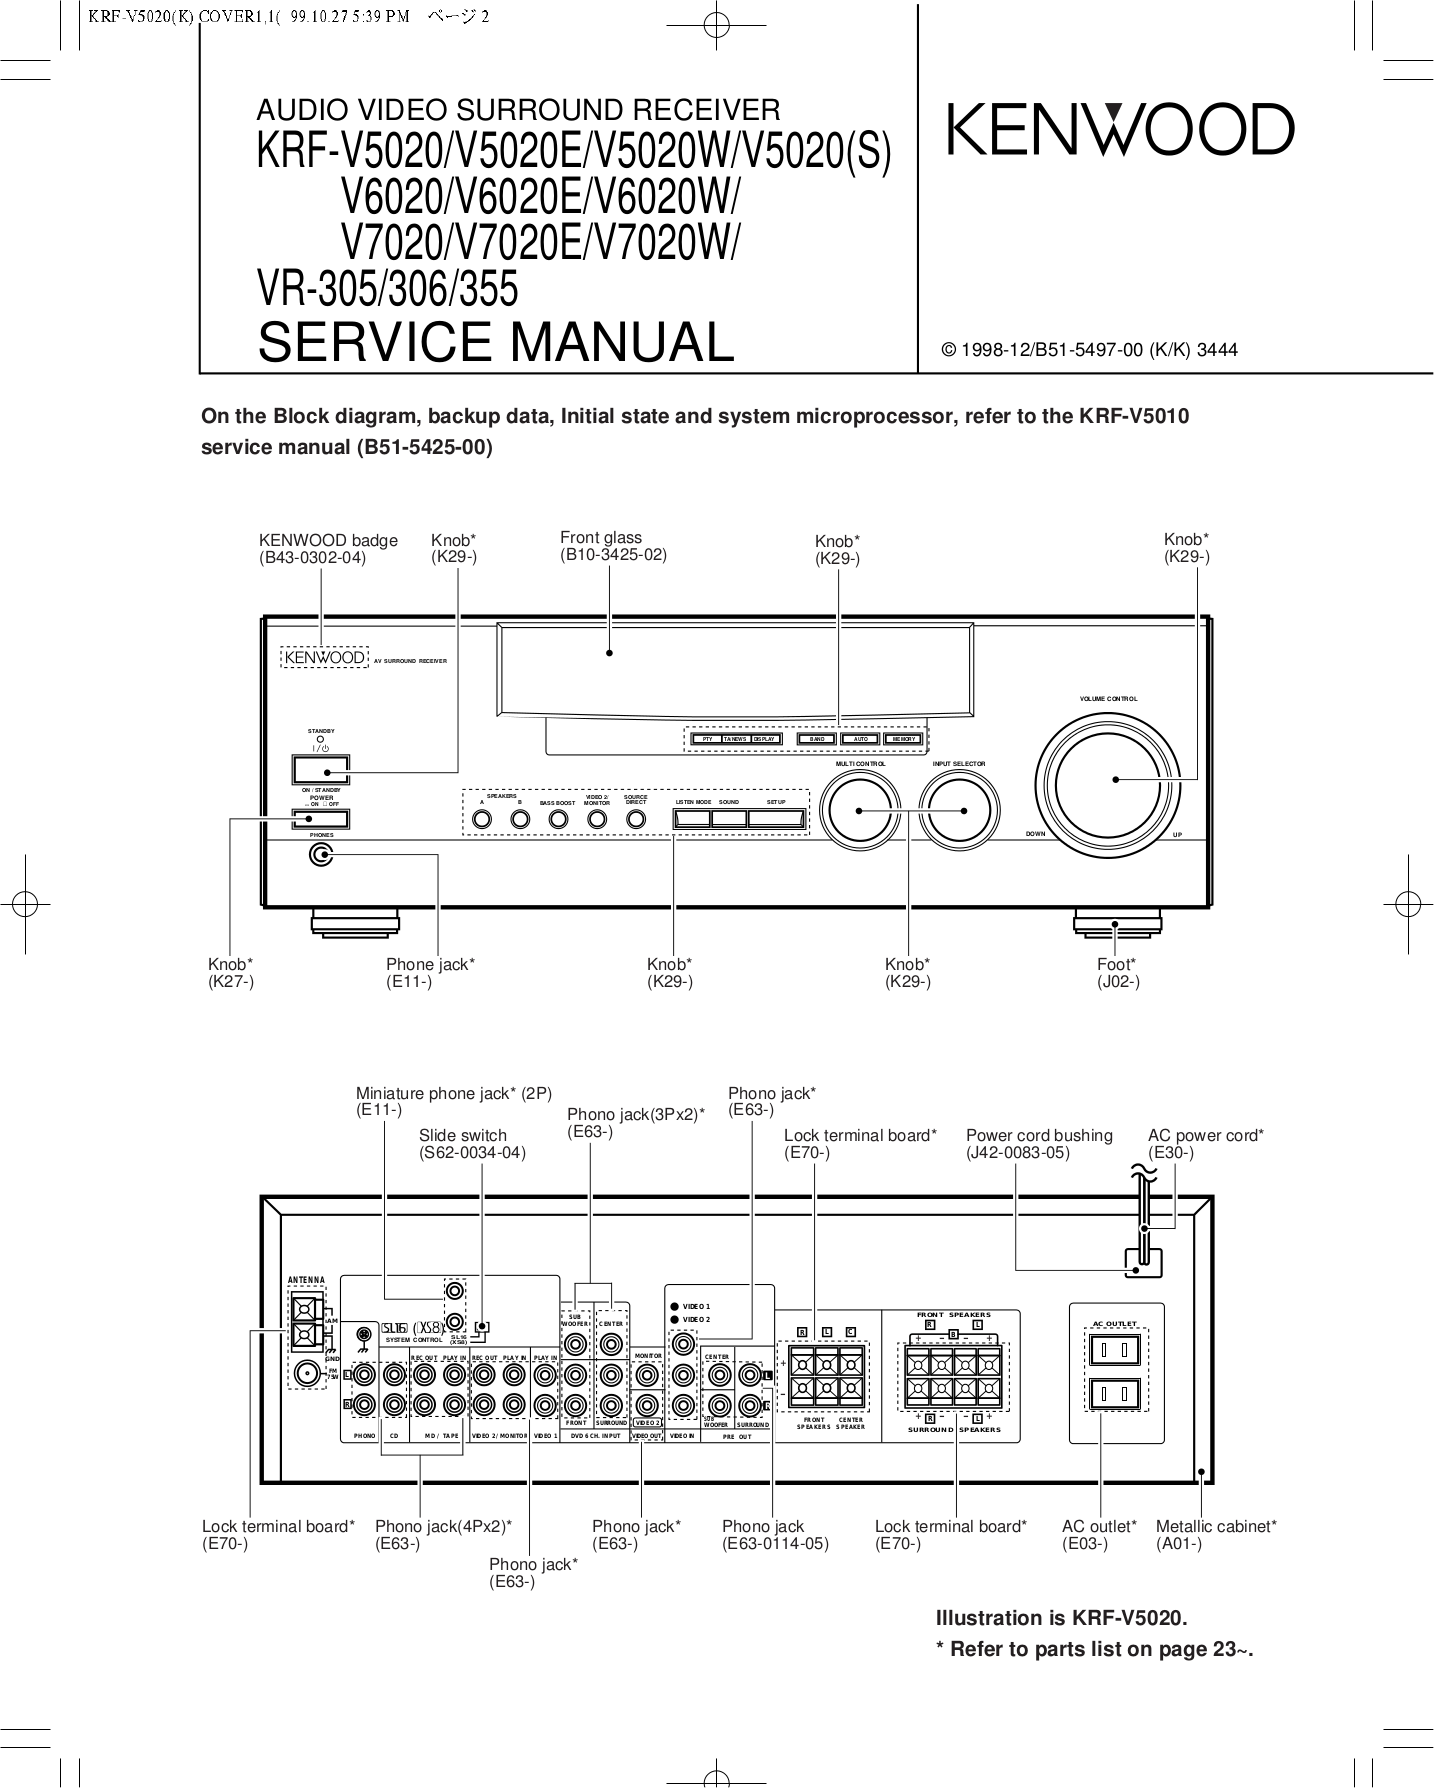 Kenwood Krf V5020 Wiring Diagram And Schematics Stereo For Surround Sound Pdf Manual Receiver Source Page Preview